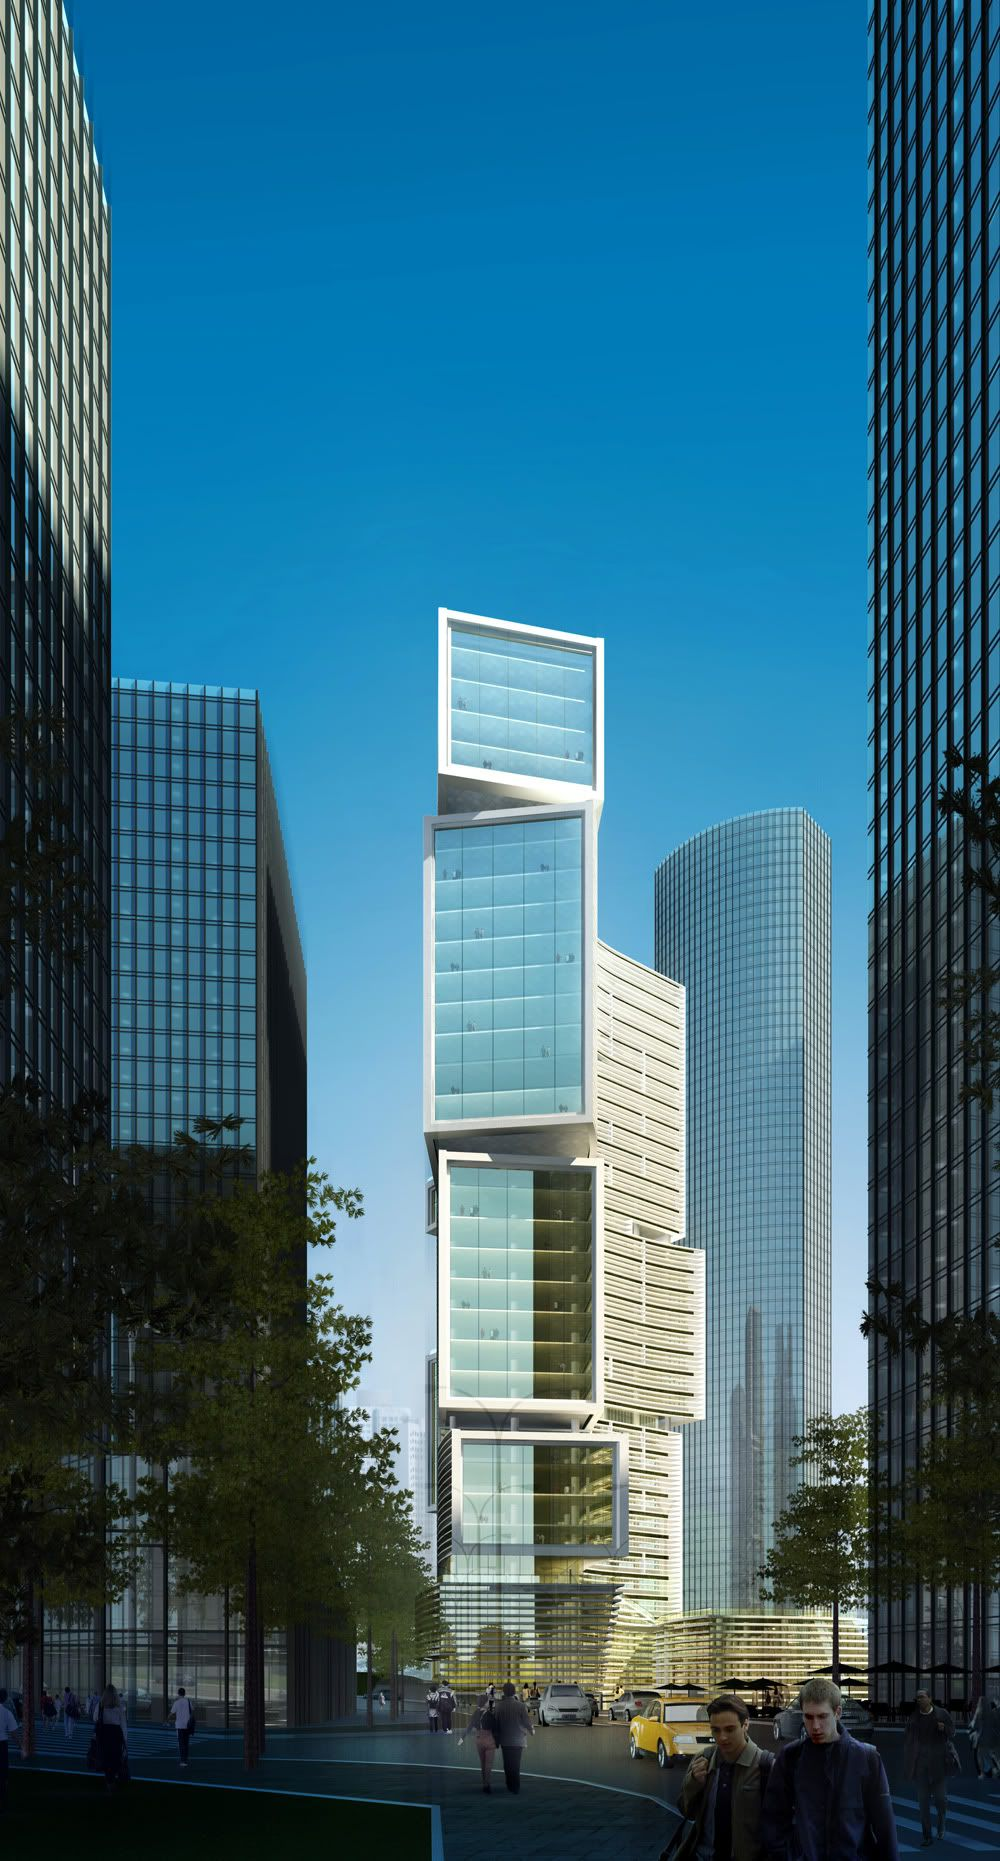 cool modern architecture page 17 skyscraperpage forum cool modern architecture u47 architecture